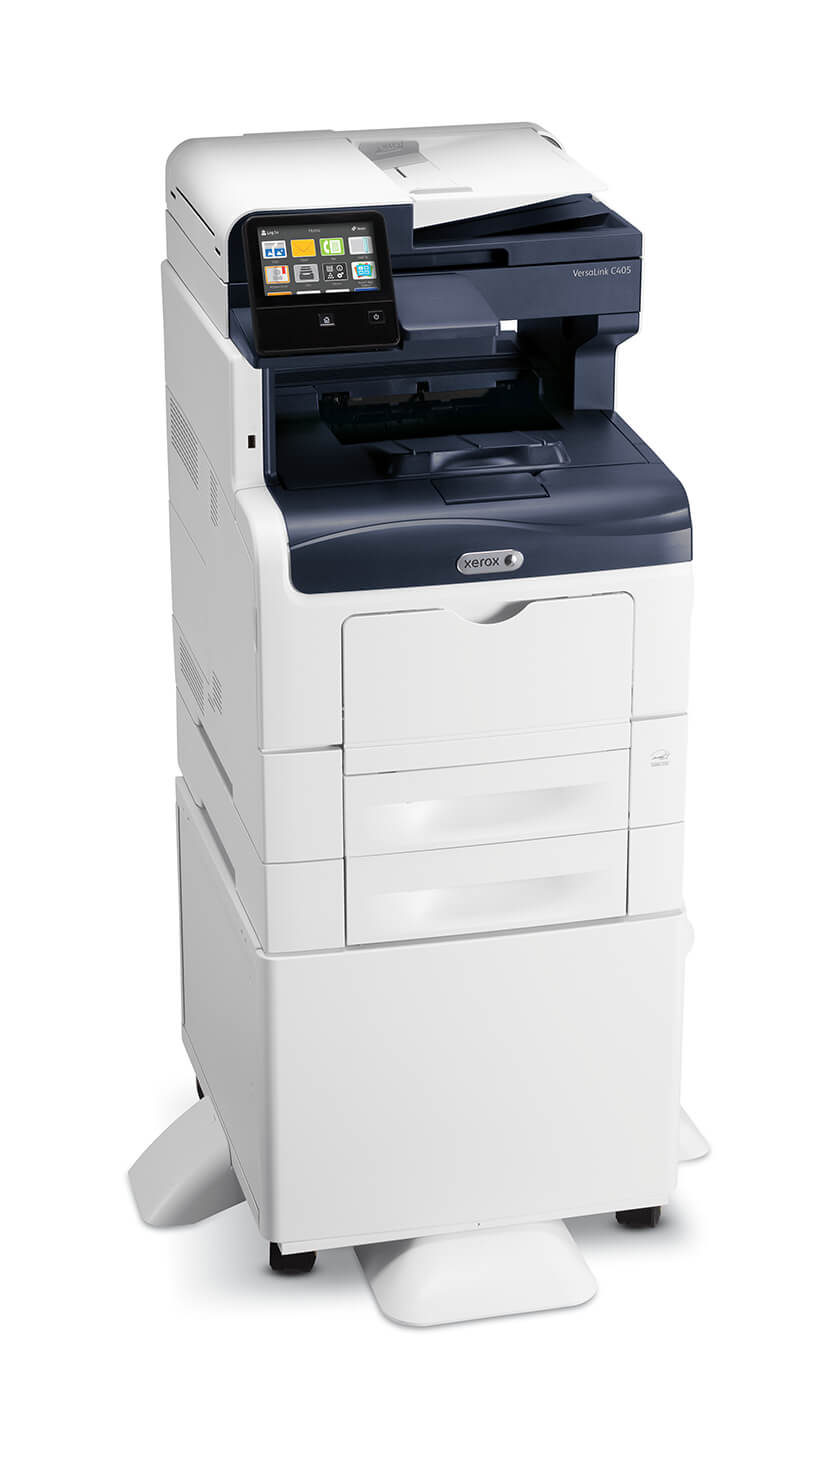 Revolutionary productivity from the new benchmark in multifunction printers